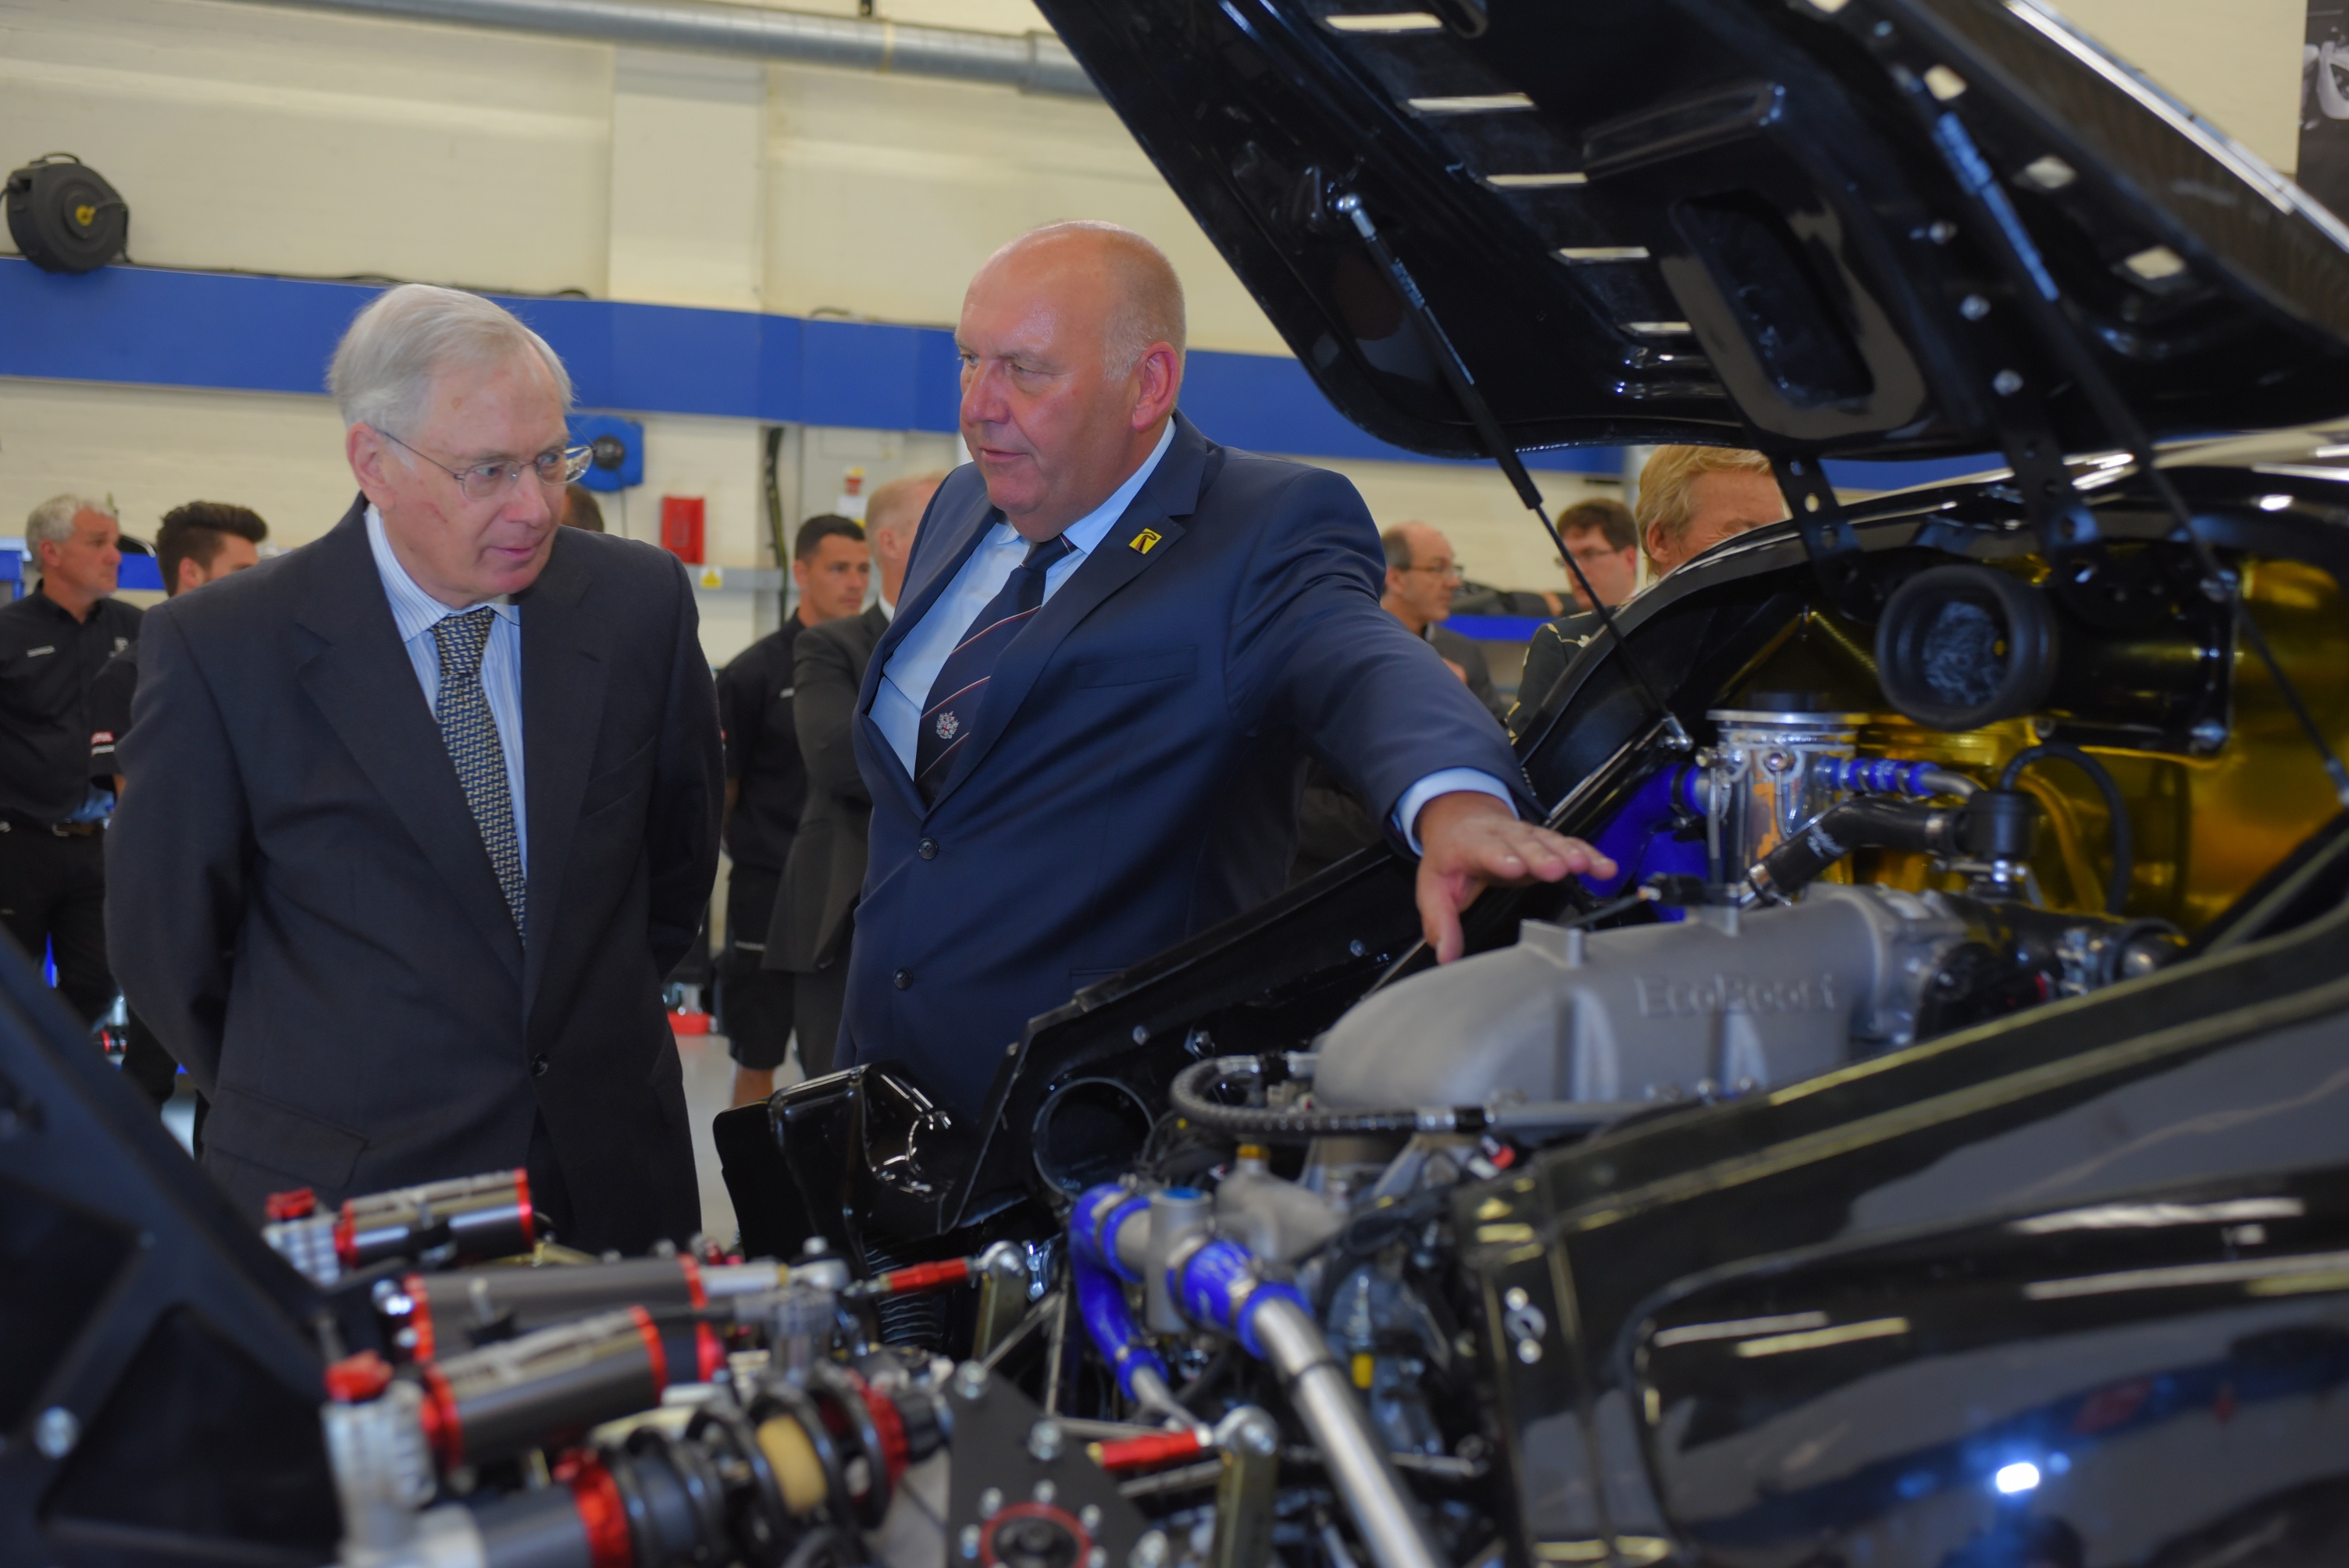 HRH The Duke of Gloucester opens new road-car production centre at Radical Sportscars' Peterborough HQ